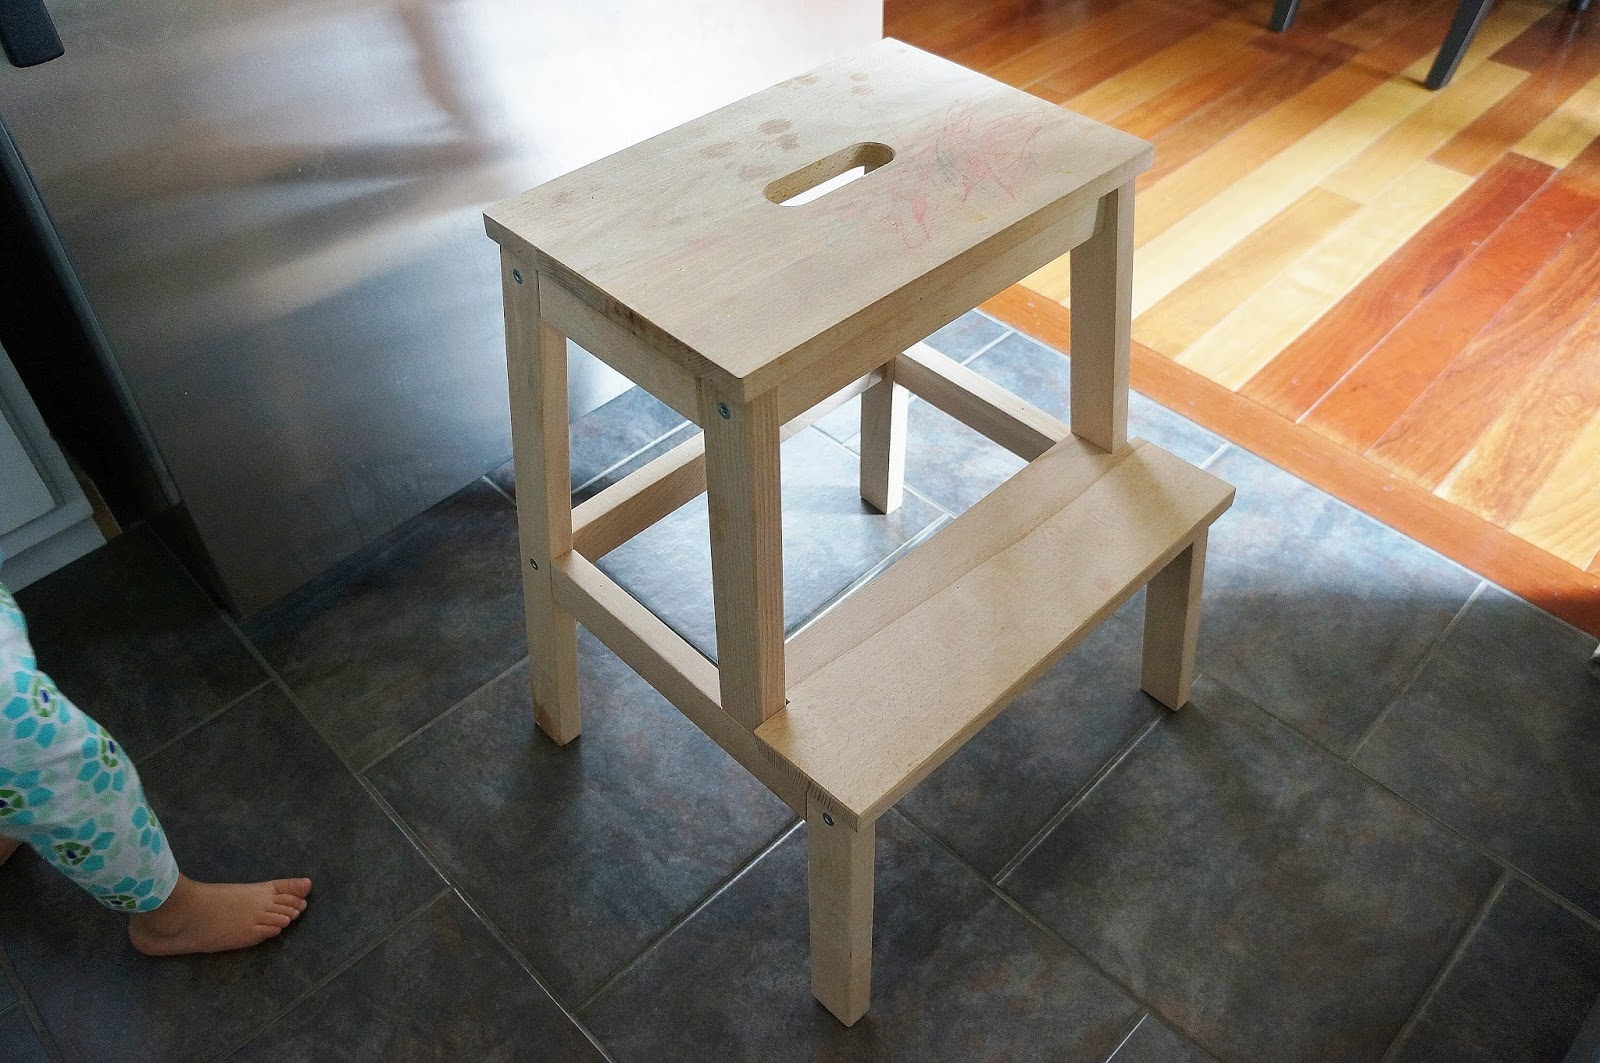 Ikea Kitchen Step Stool Calphalon Essentials Stainless Steel Freckles Chick Spruced Up Bekvam